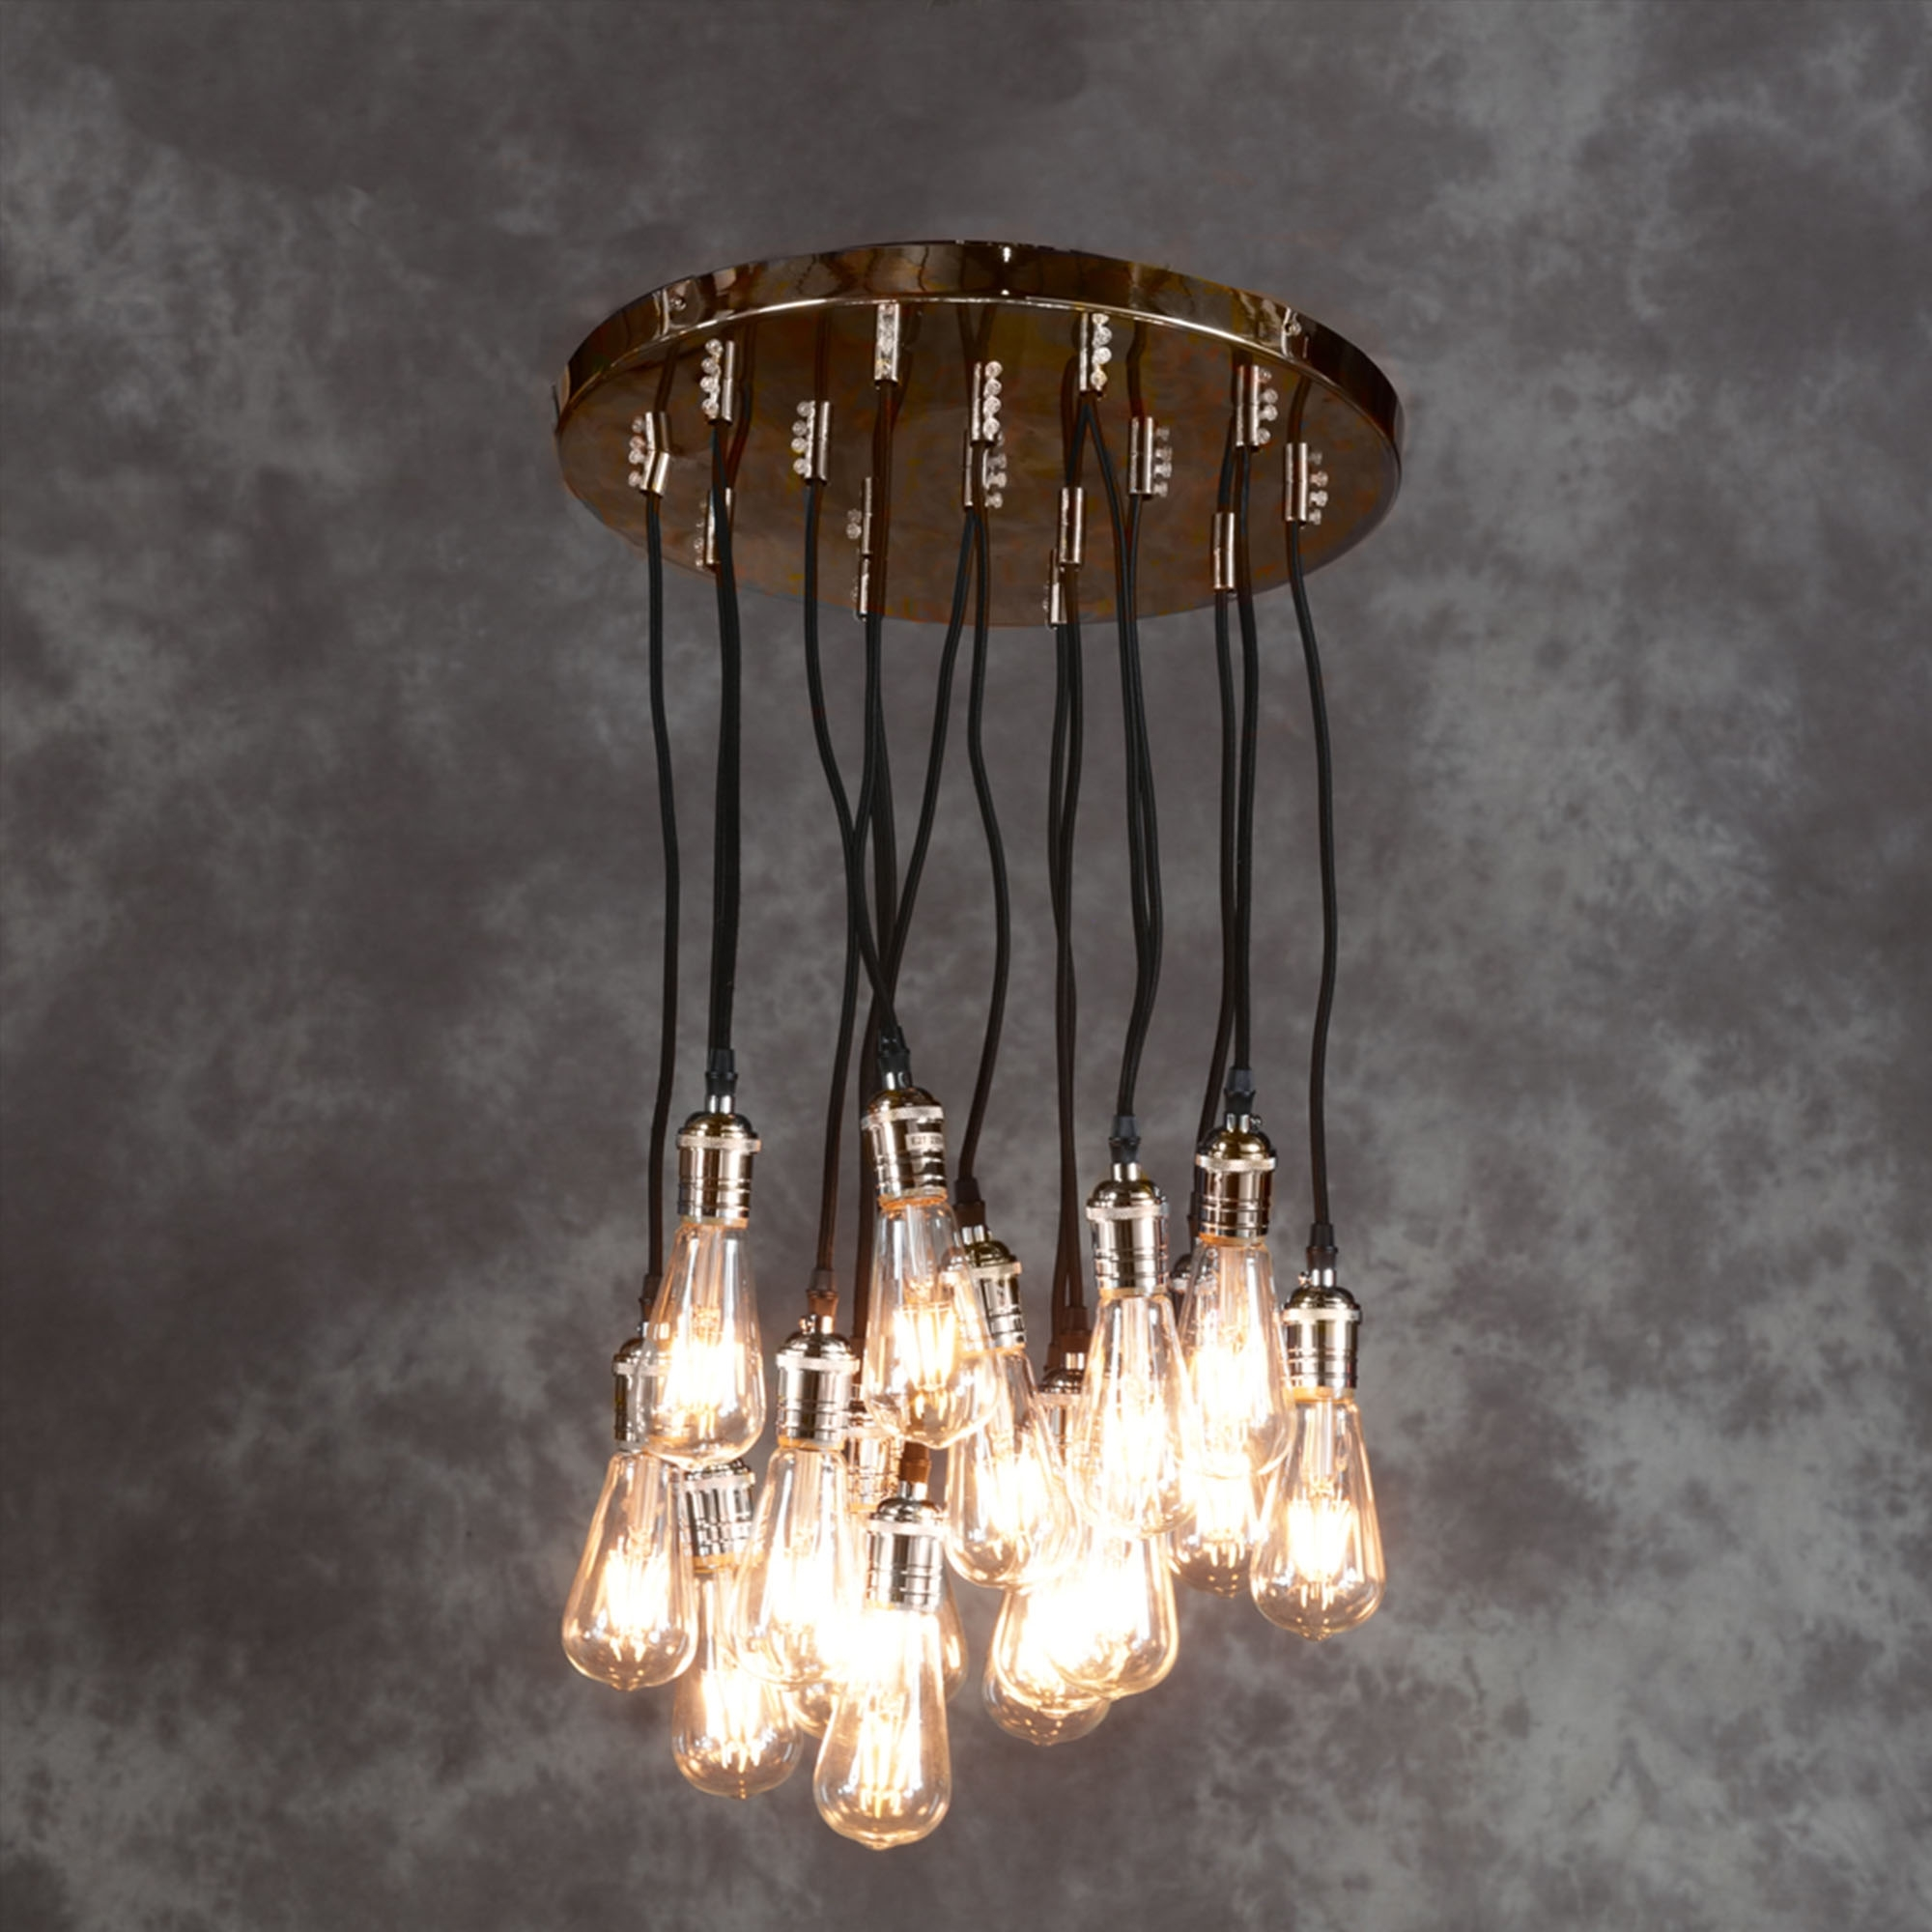 lighting copper multi vintage zoom light french from pendant chandelier